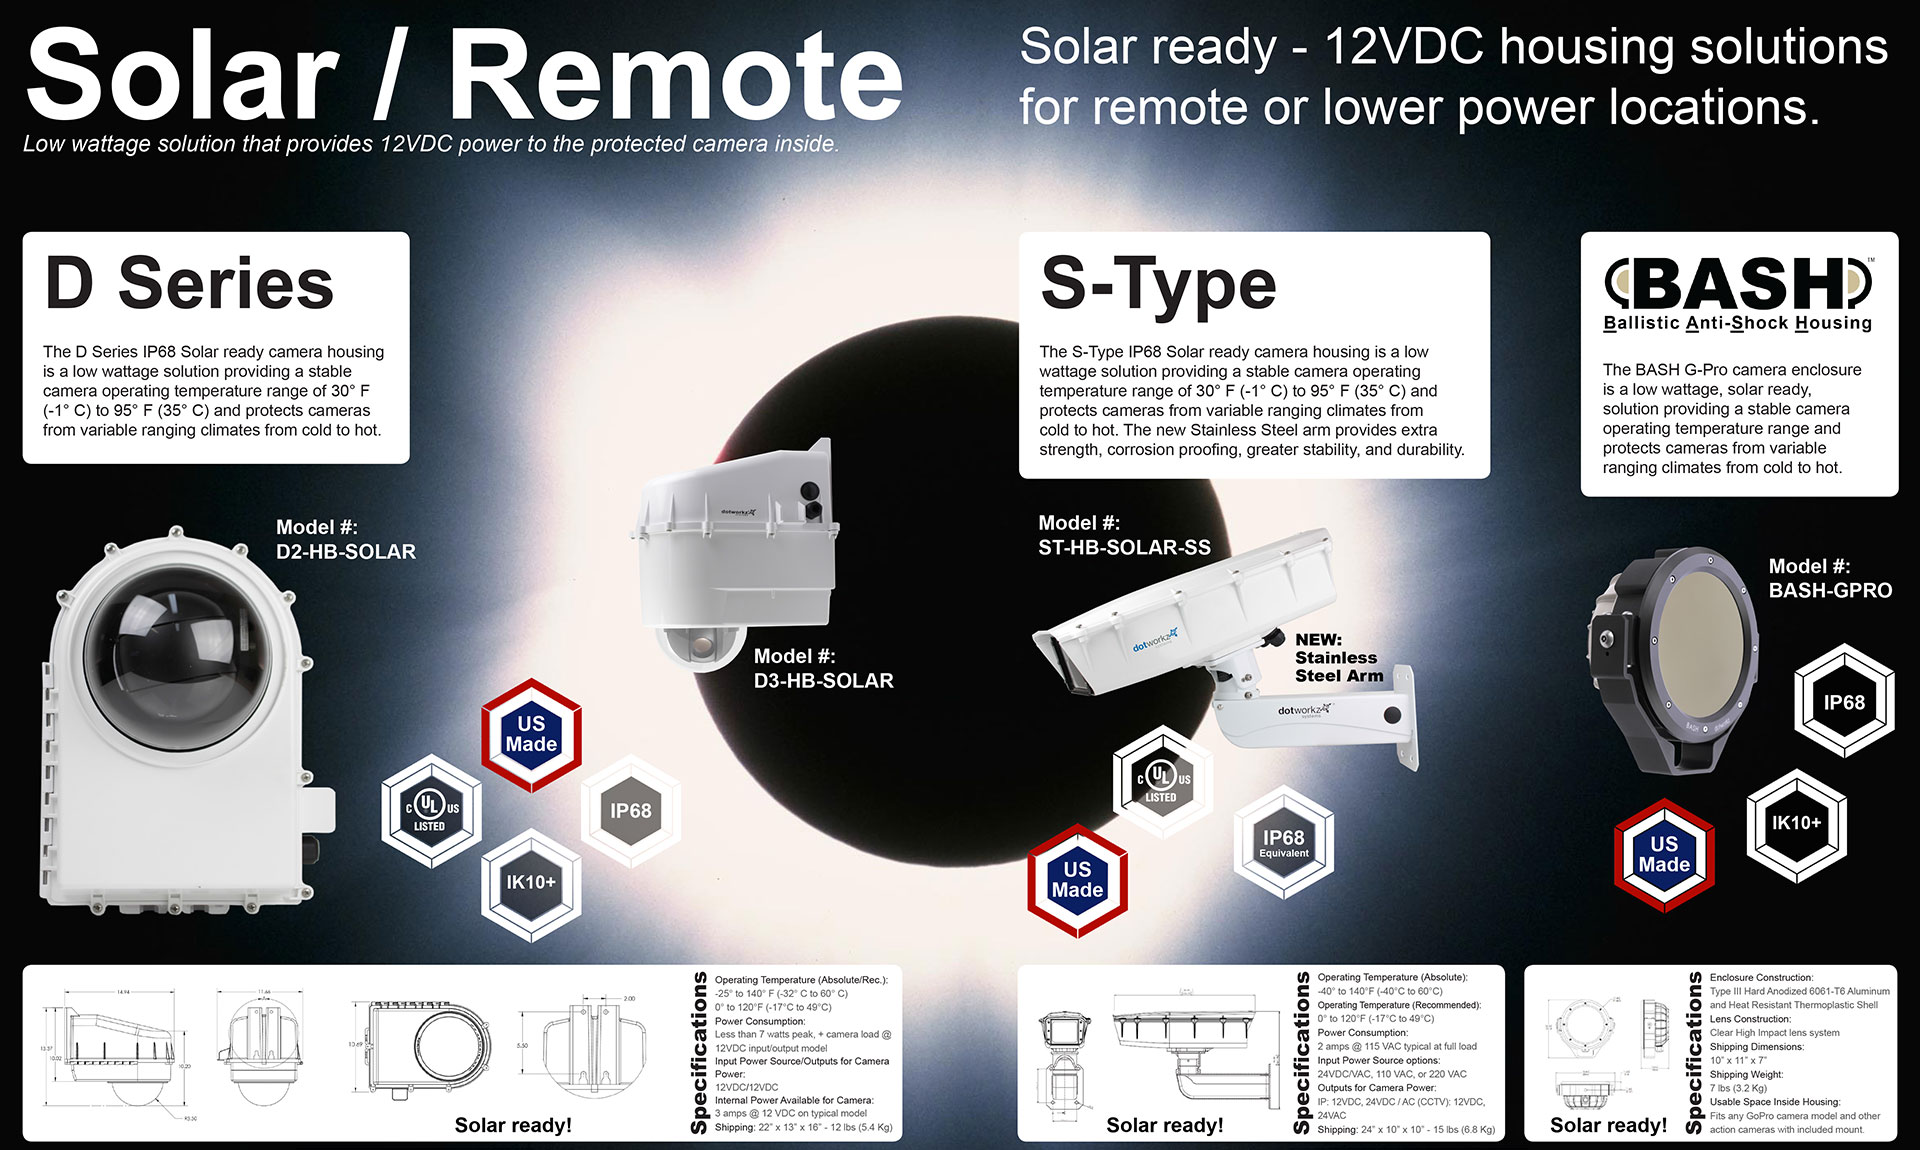 Dotworkz Solar ready camera housings 12VDC housing solutions for remote or lower power locations